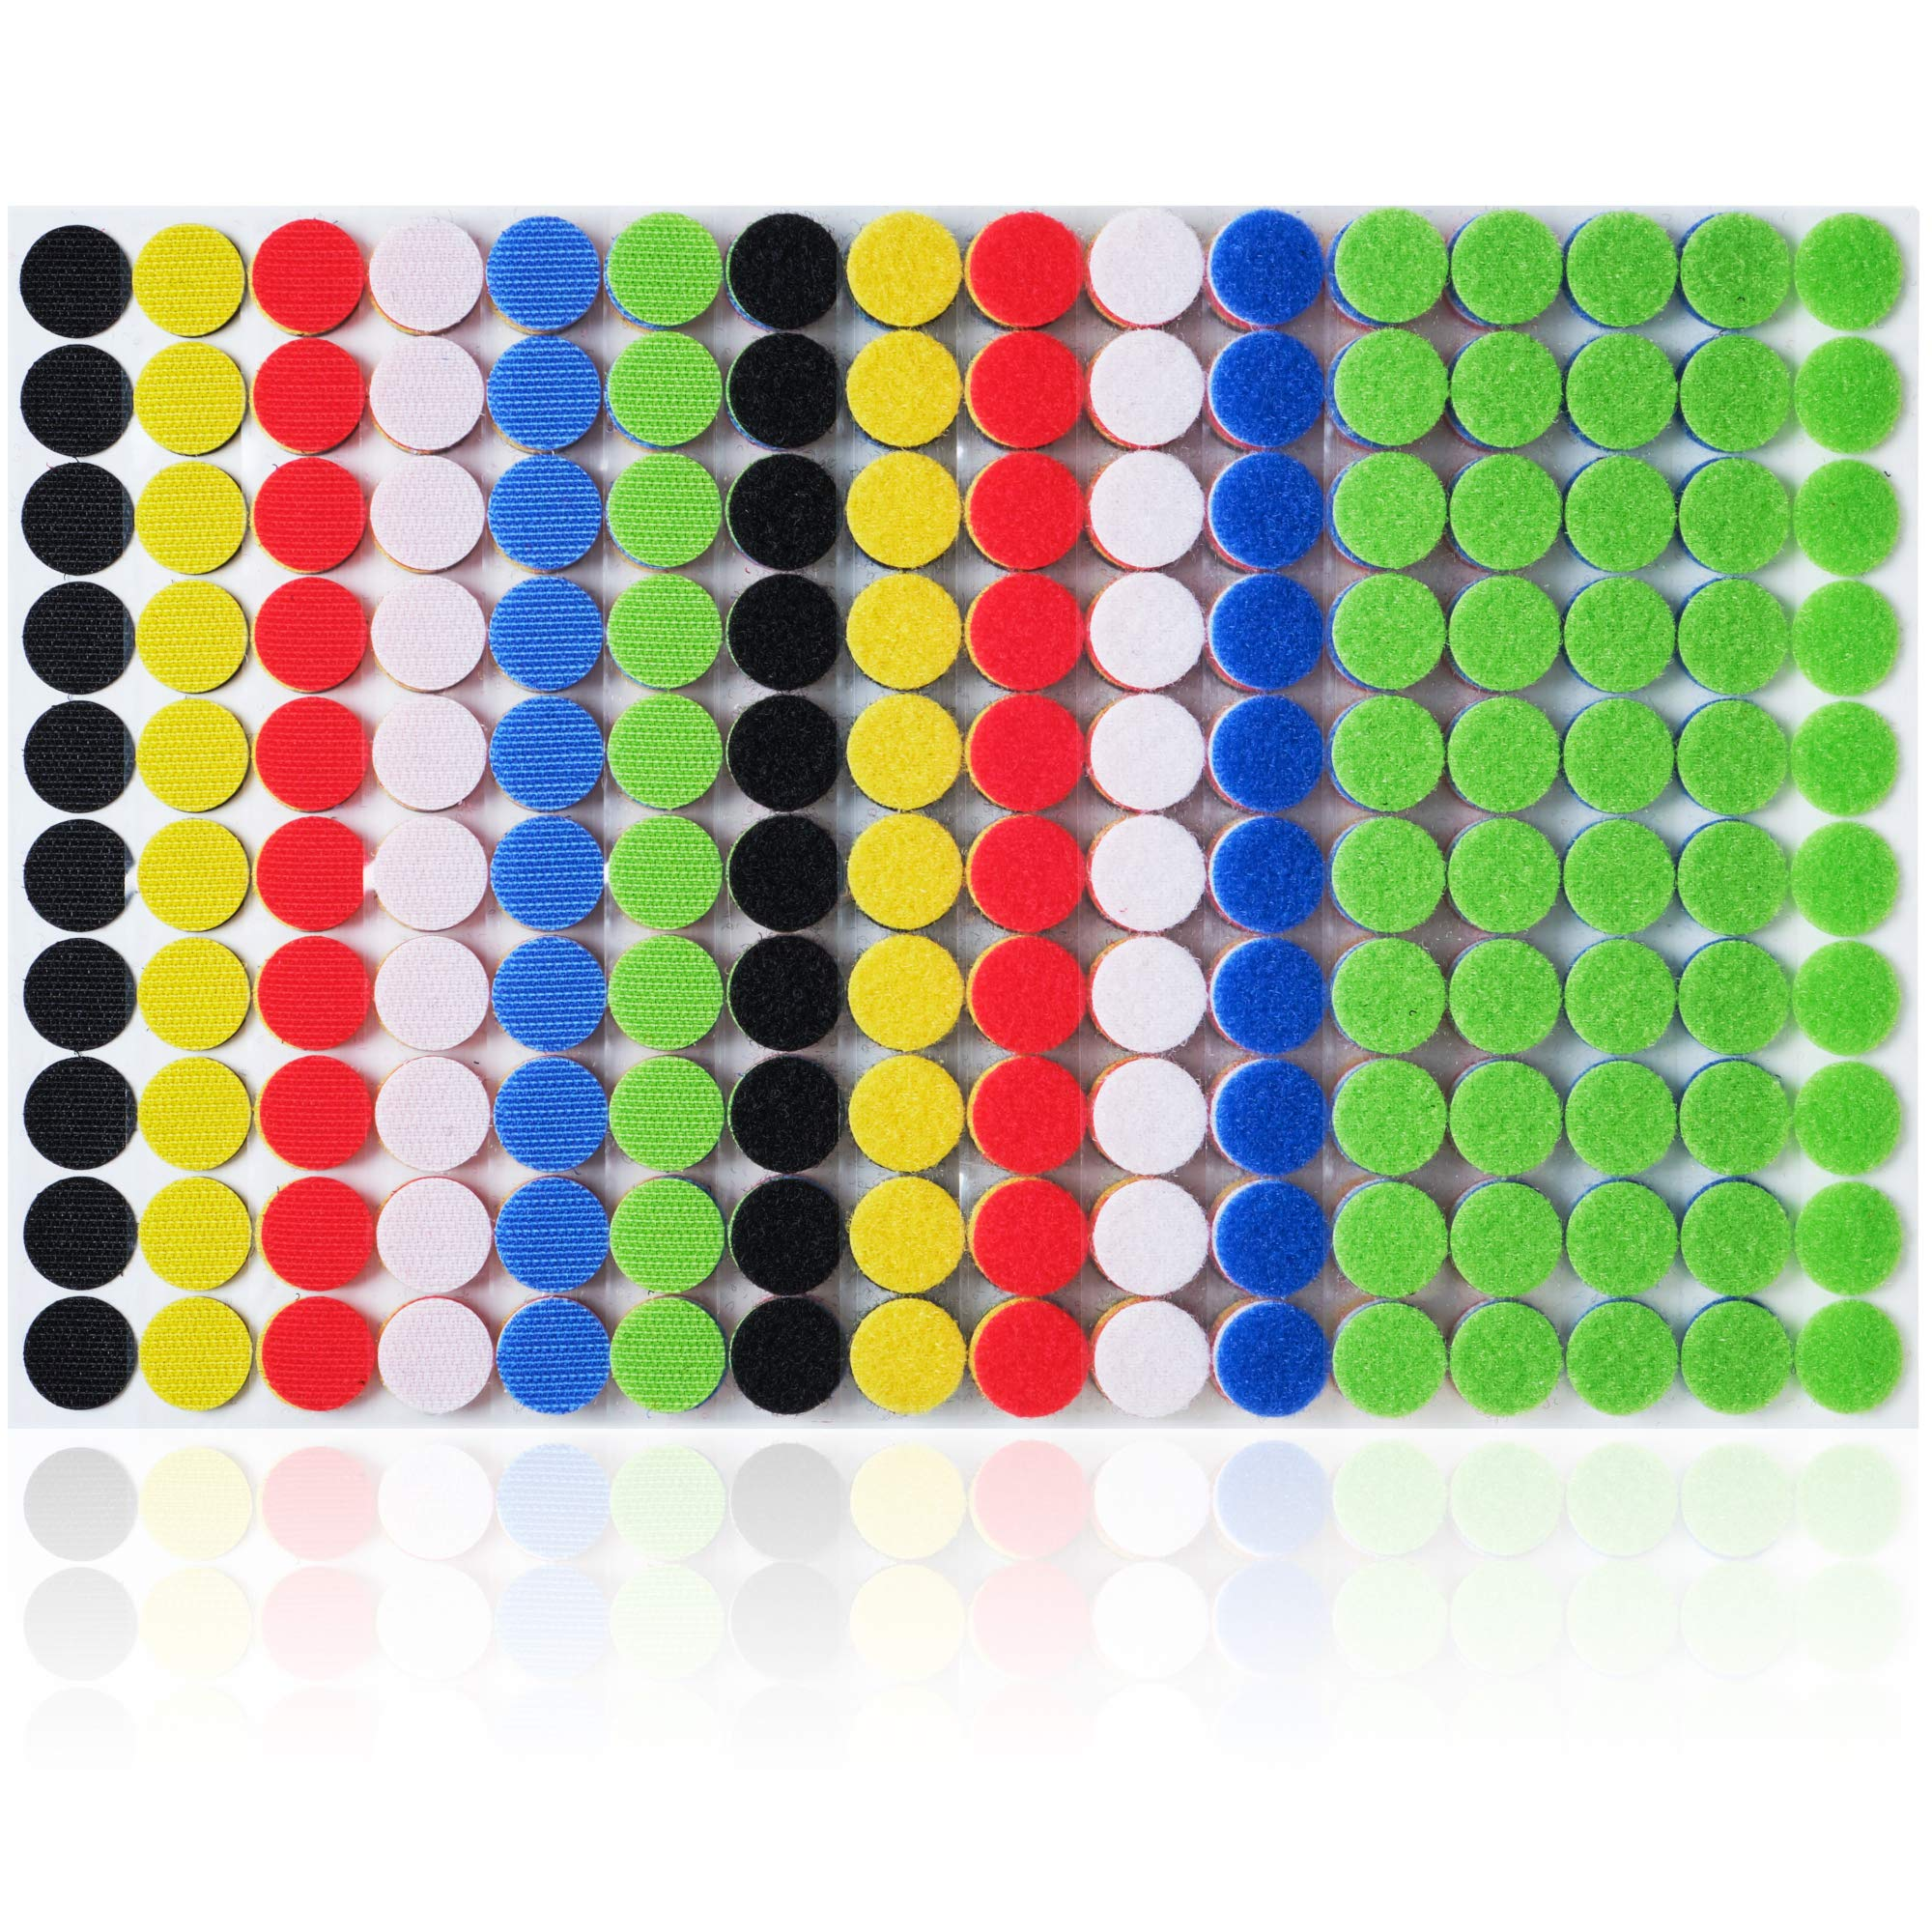 Miracle Market 600 Pcs (300 Pairs) of Colorful Hook and Loop Self Adhesive Fastener Dots | Sticky Back ¾'' (20 mm) Diameter Heavy Duty Circles | Best for Home, Office, Classroom and Crafts | 6 Color by Miracle Market